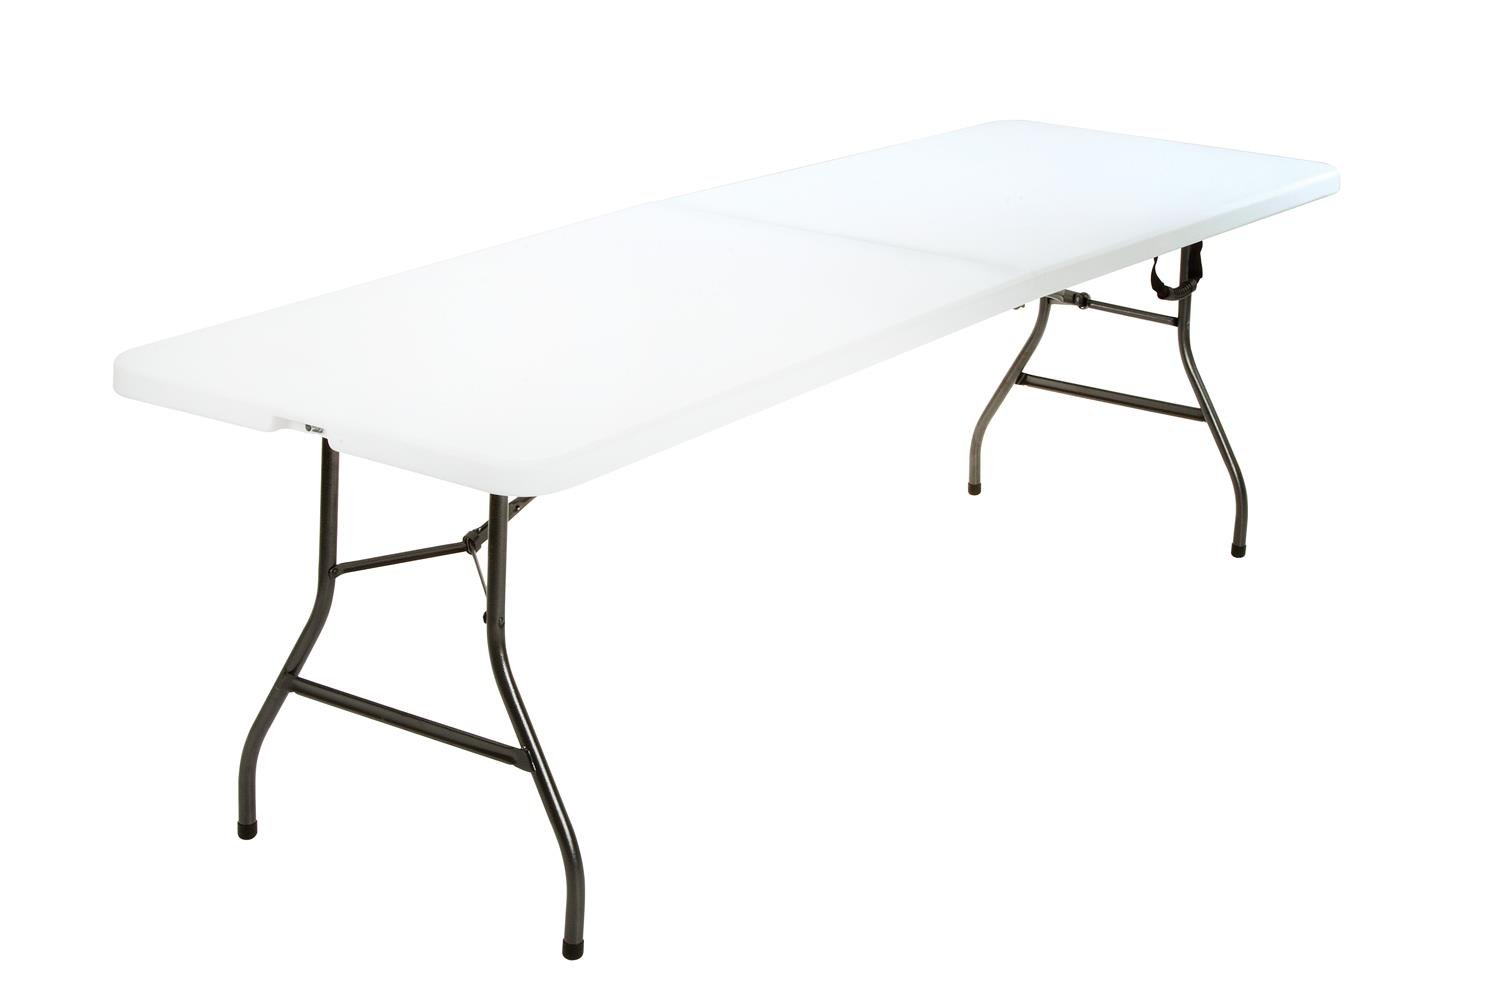 COSCO Deluxe 8 foot x 30 inch Fold-in-Half Blow Molded Folding Table, White by Cosco